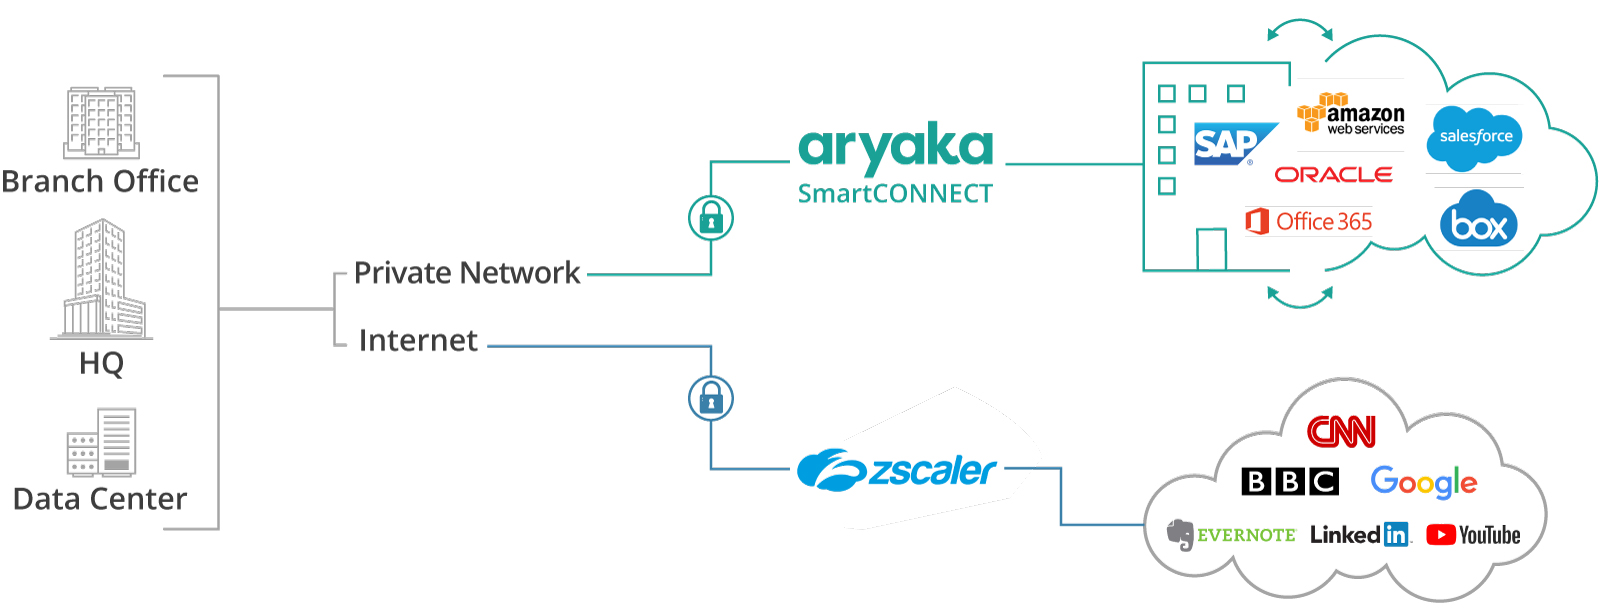 SD-WAN and Cloud Security | Aryaka and Zscaler | Data Sheet